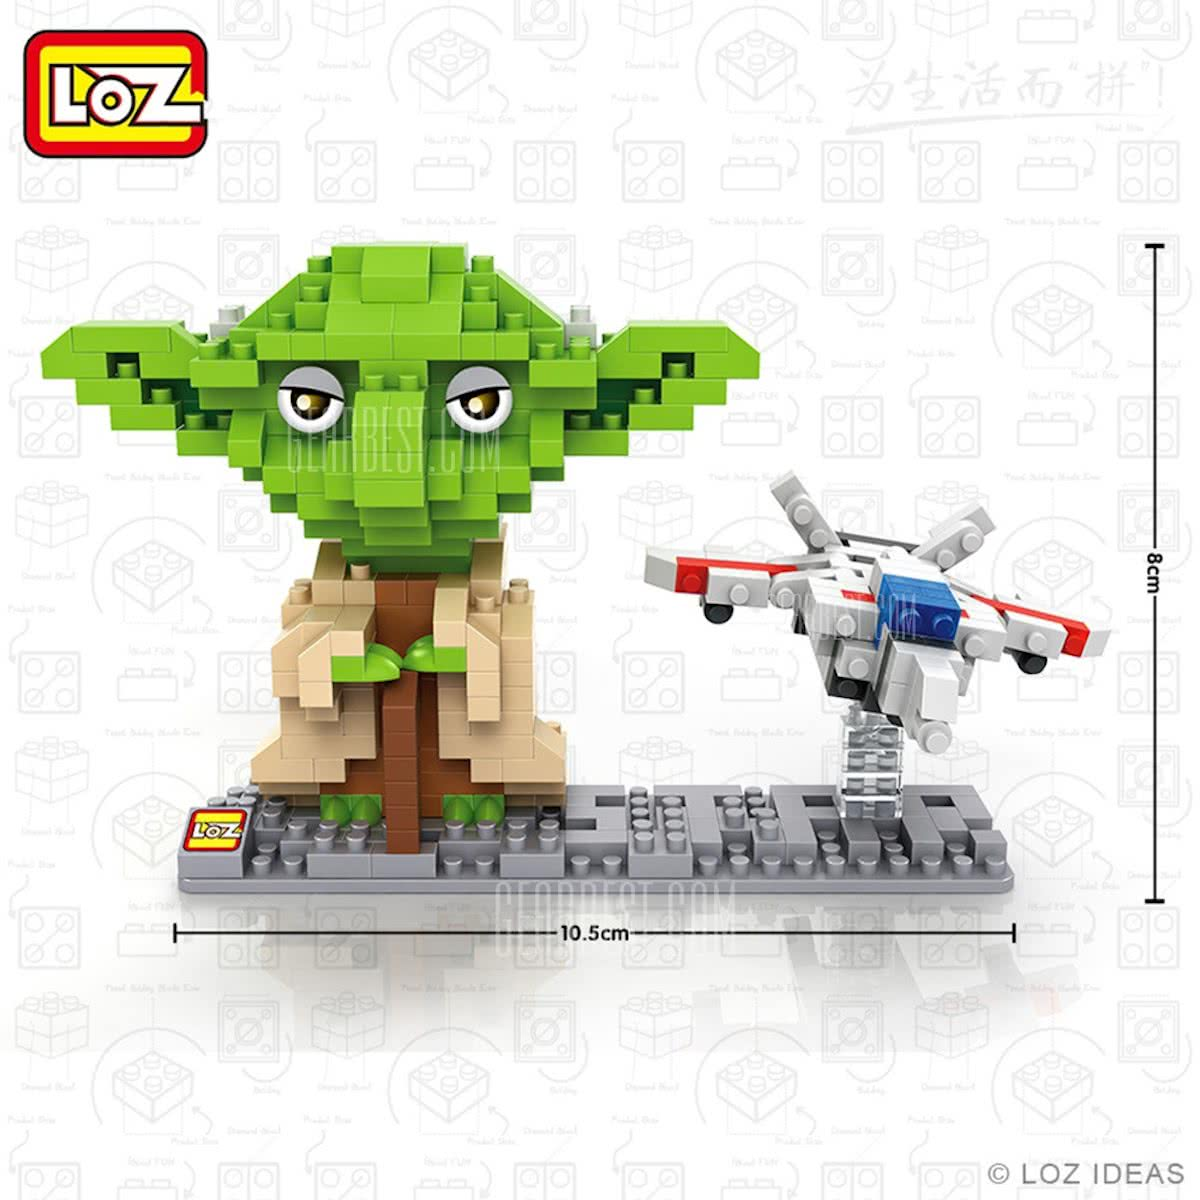 Yoda, Star Wars, LOZ Diamond BLocks